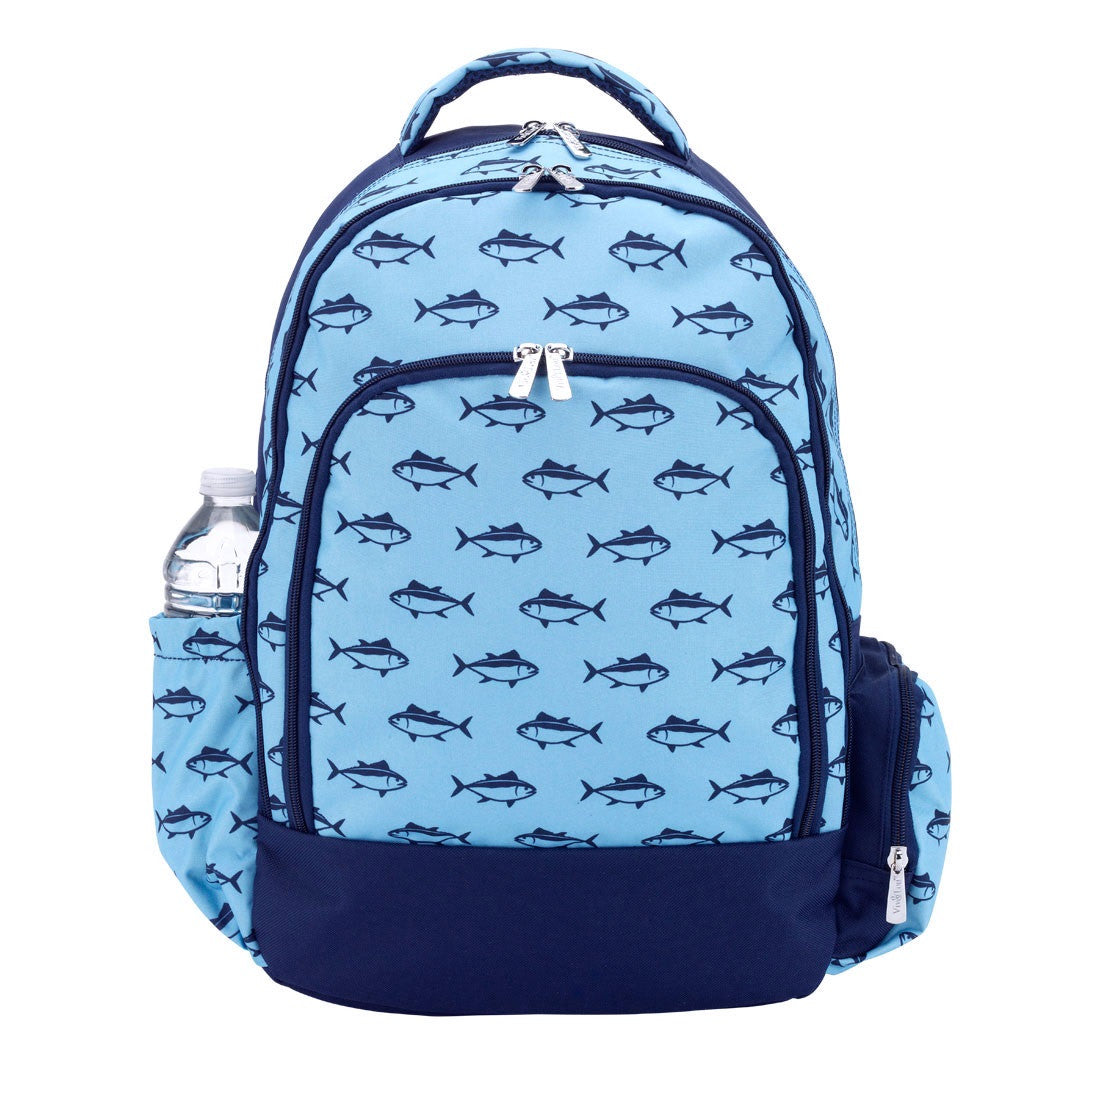 Reject Shop Christmas Tree Lights: School Of Fish Personalized Backpack